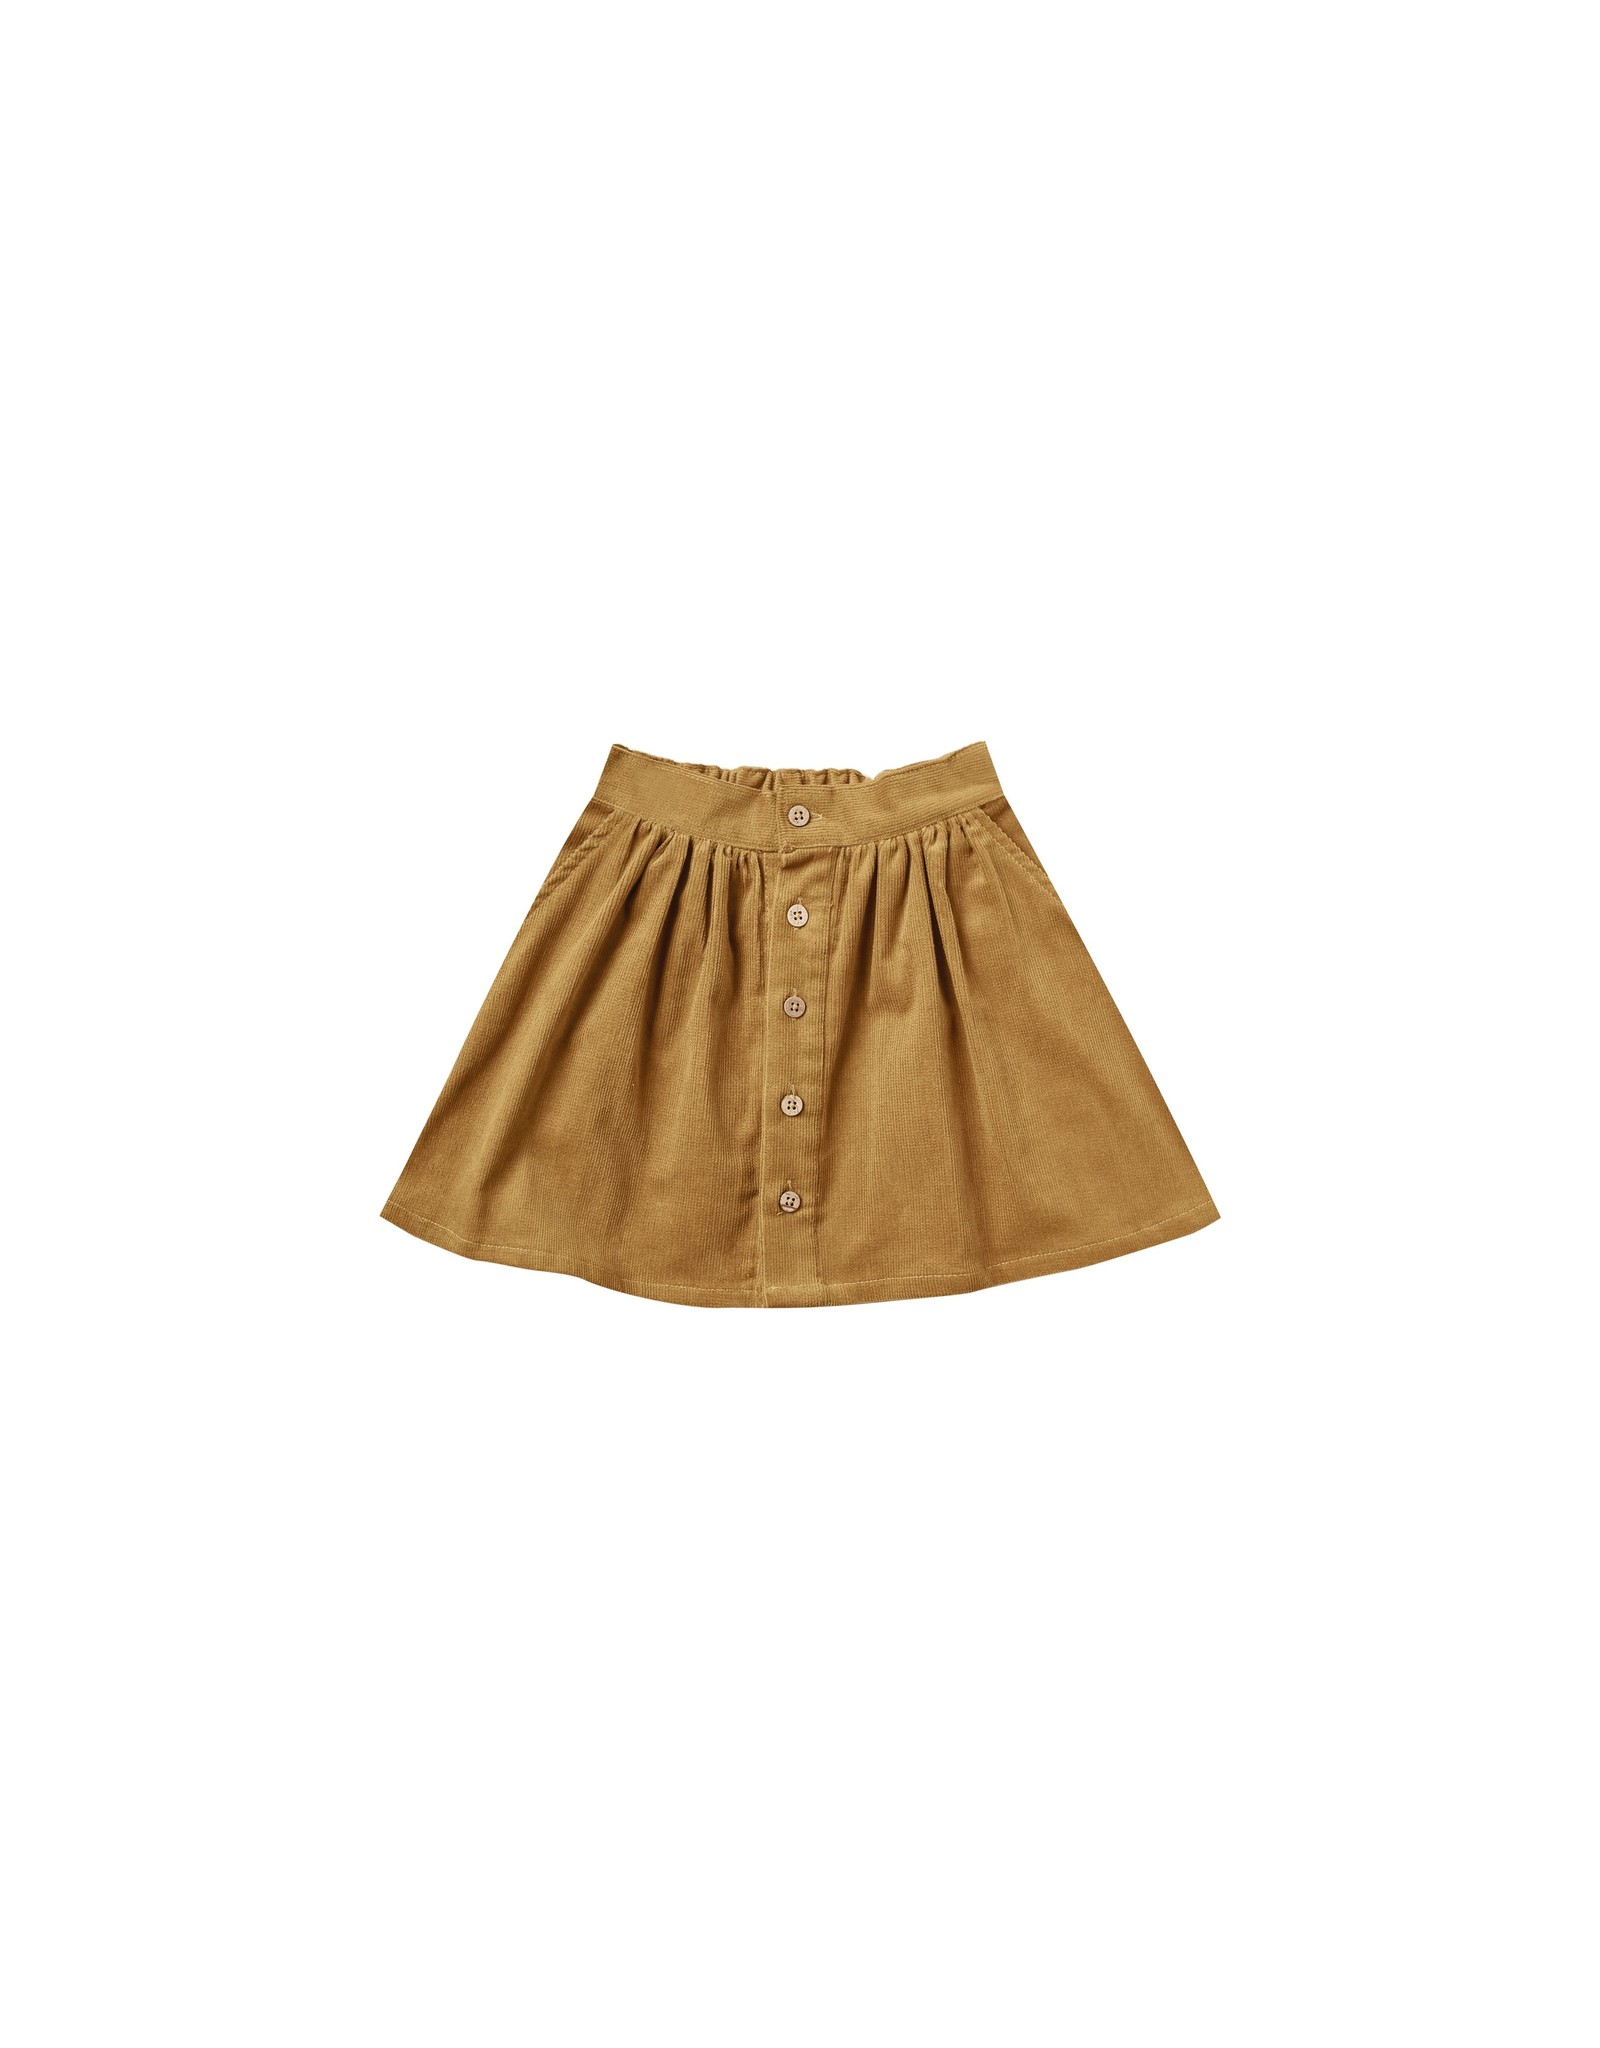 Rylee and Cru button front mini skirt- goldenrod